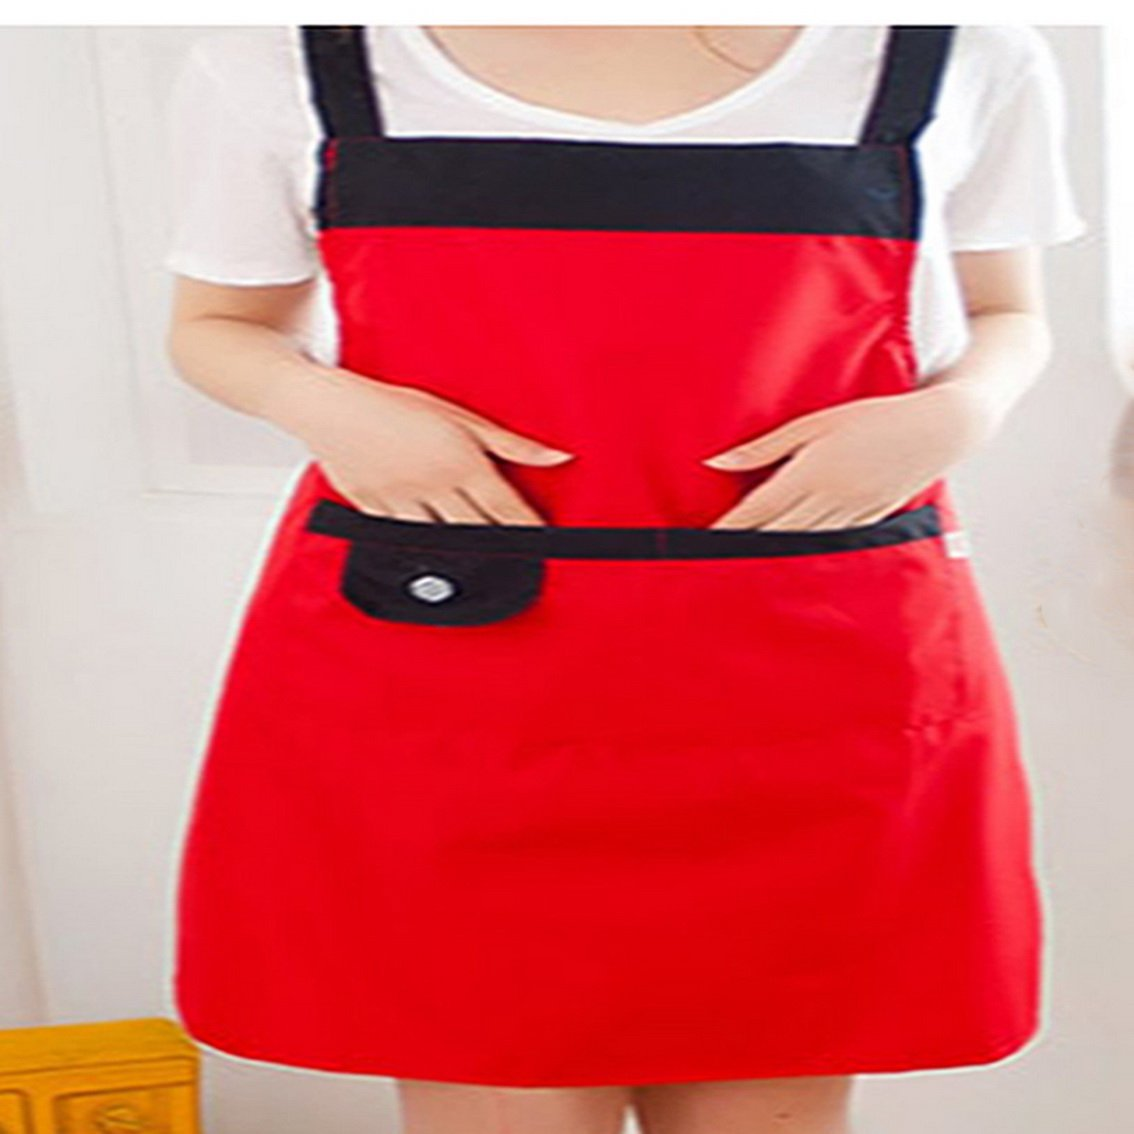 fengg2030shann Cute sleeves apron female simple and stylish thick waterproof kitchen apron adult gowns. Aprons apron Aprons sleeve gown Aprons gowns